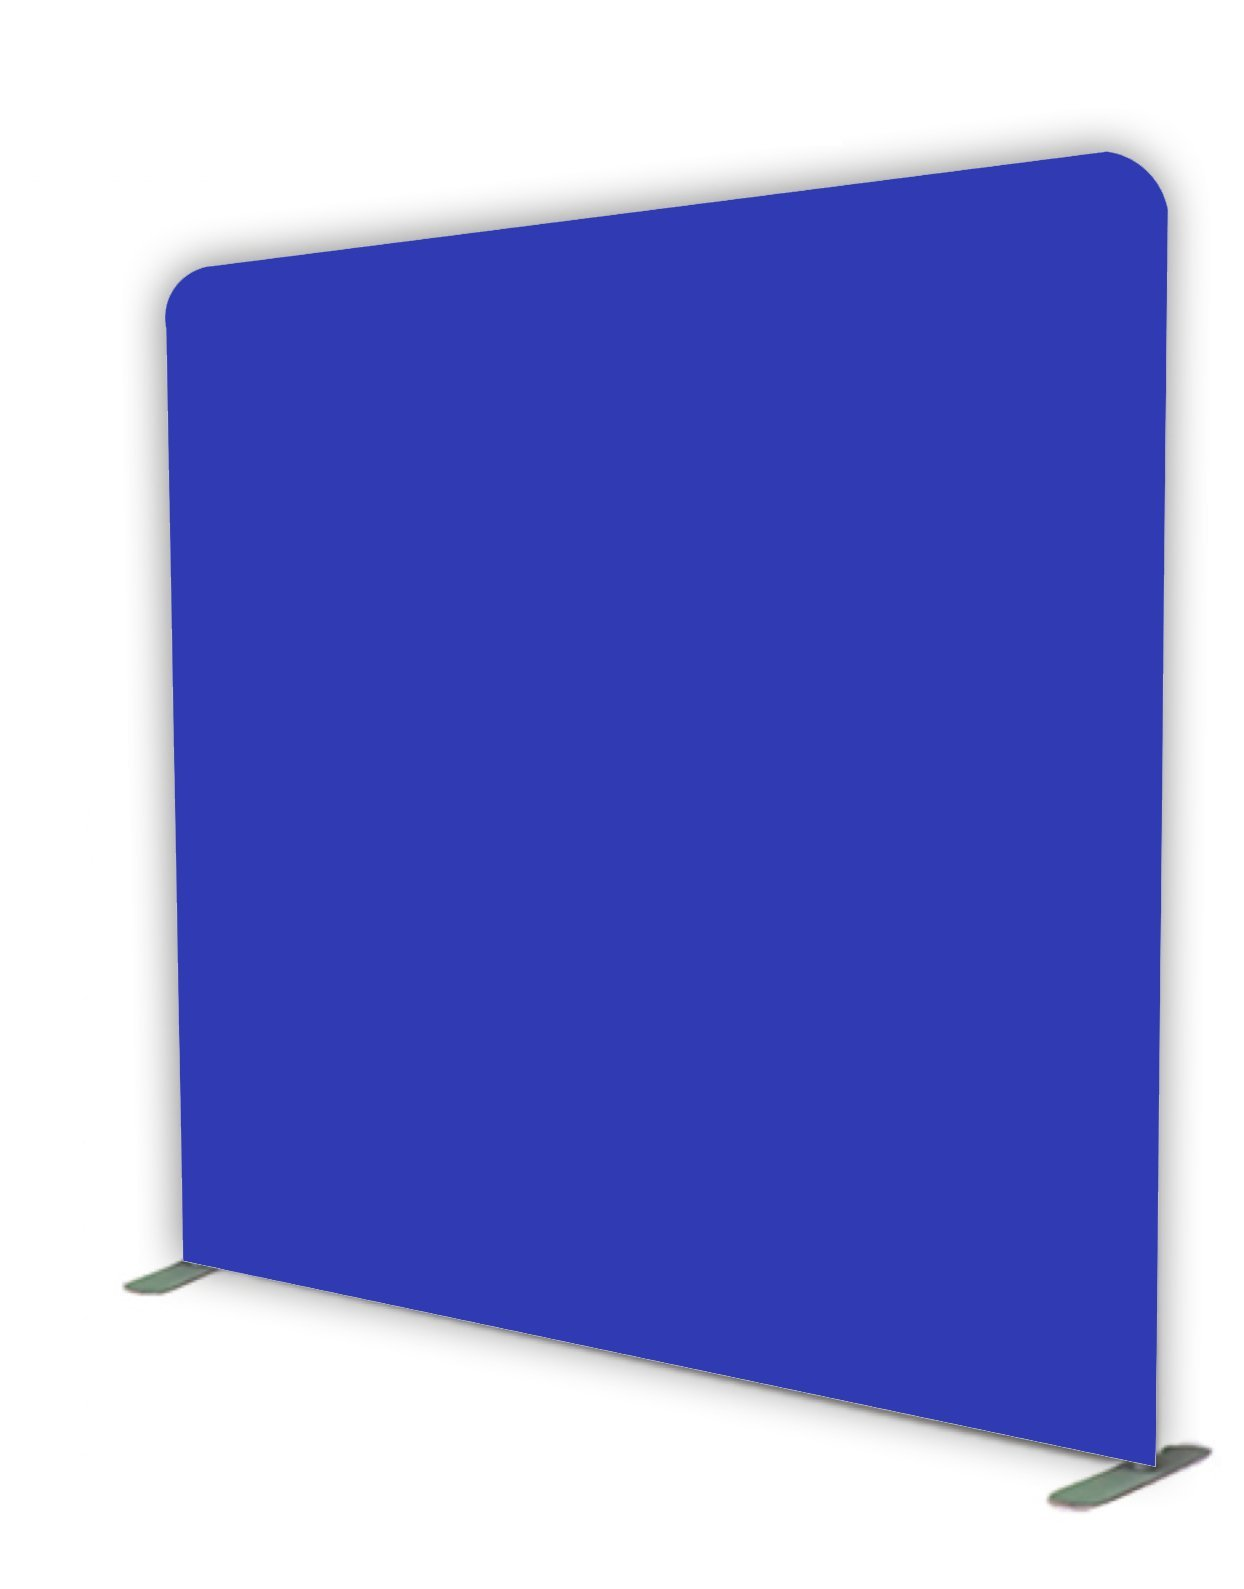 Glide Gear 8x8 Gaming Photography Video Green Screen Wrinkle Free Backdrop 4X Colors: Black/Blue/Green Chromakey/White with Collapsible Stand by Glide Gear (Image #7)